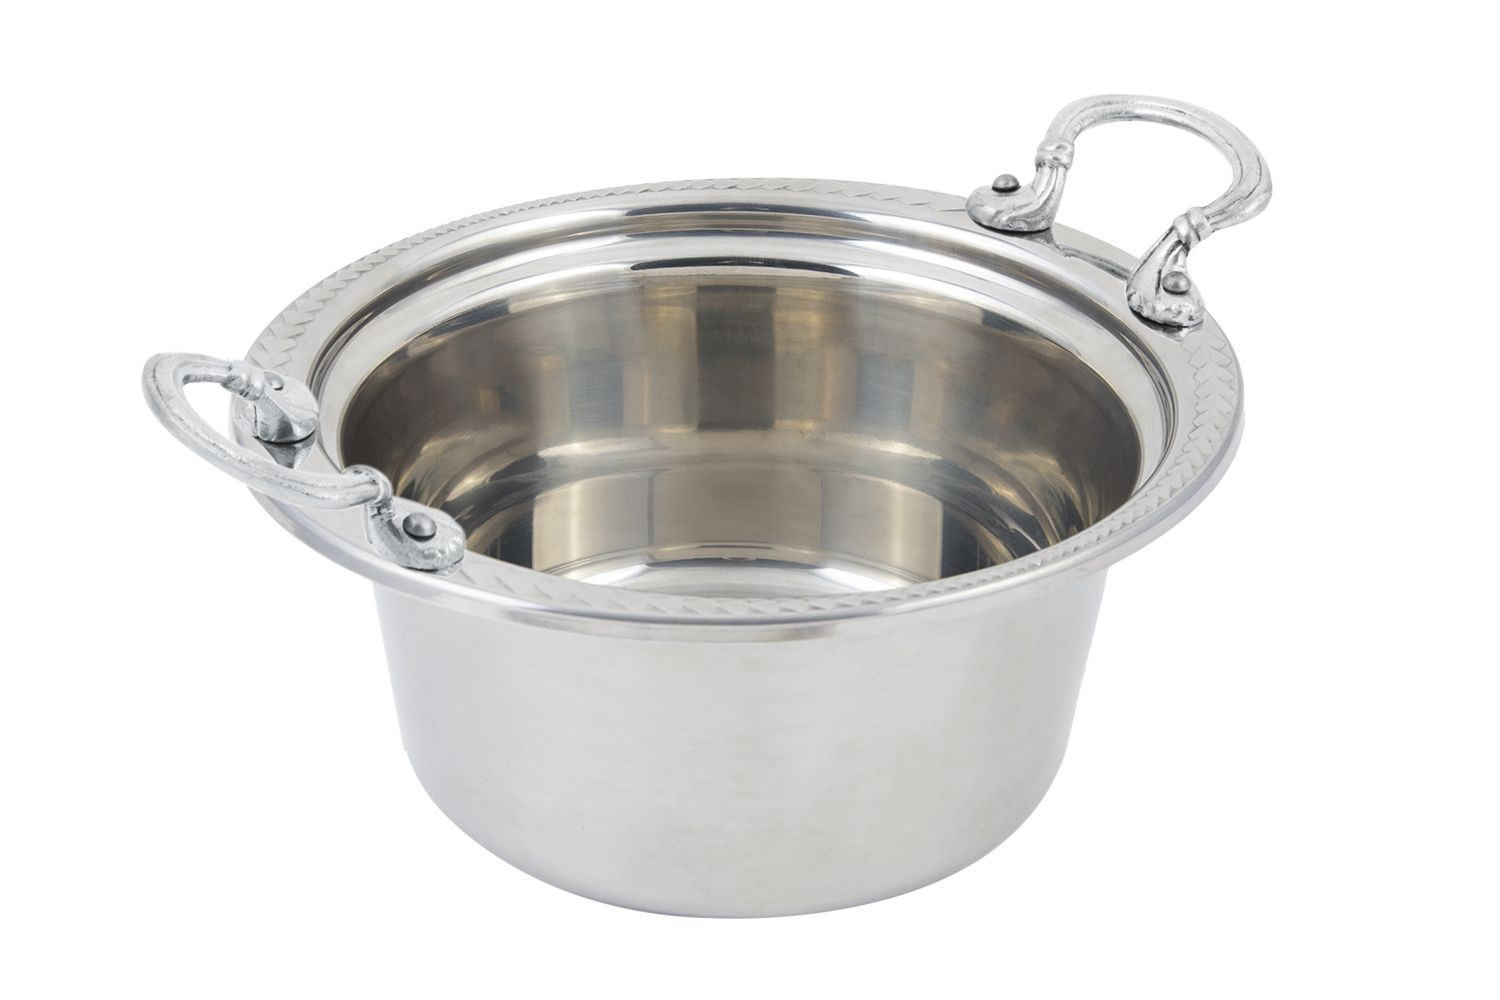 Bon Chef 5460HRSS Laurel Design Casserole Dish with Round Handles, 5 Qt.